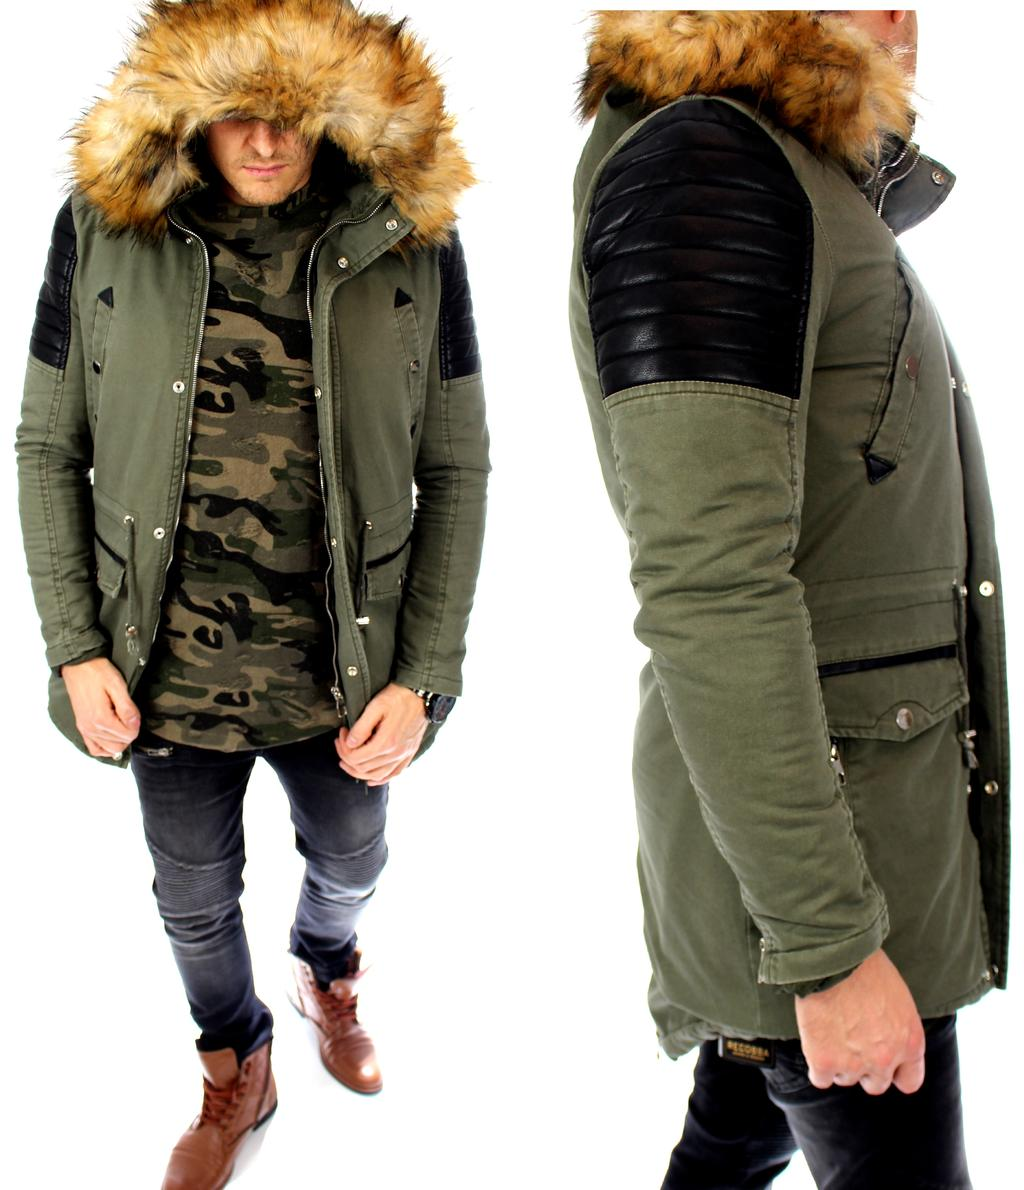 herren parka kapuzenjacke mantel khaki winterjacke alaska. Black Bedroom Furniture Sets. Home Design Ideas